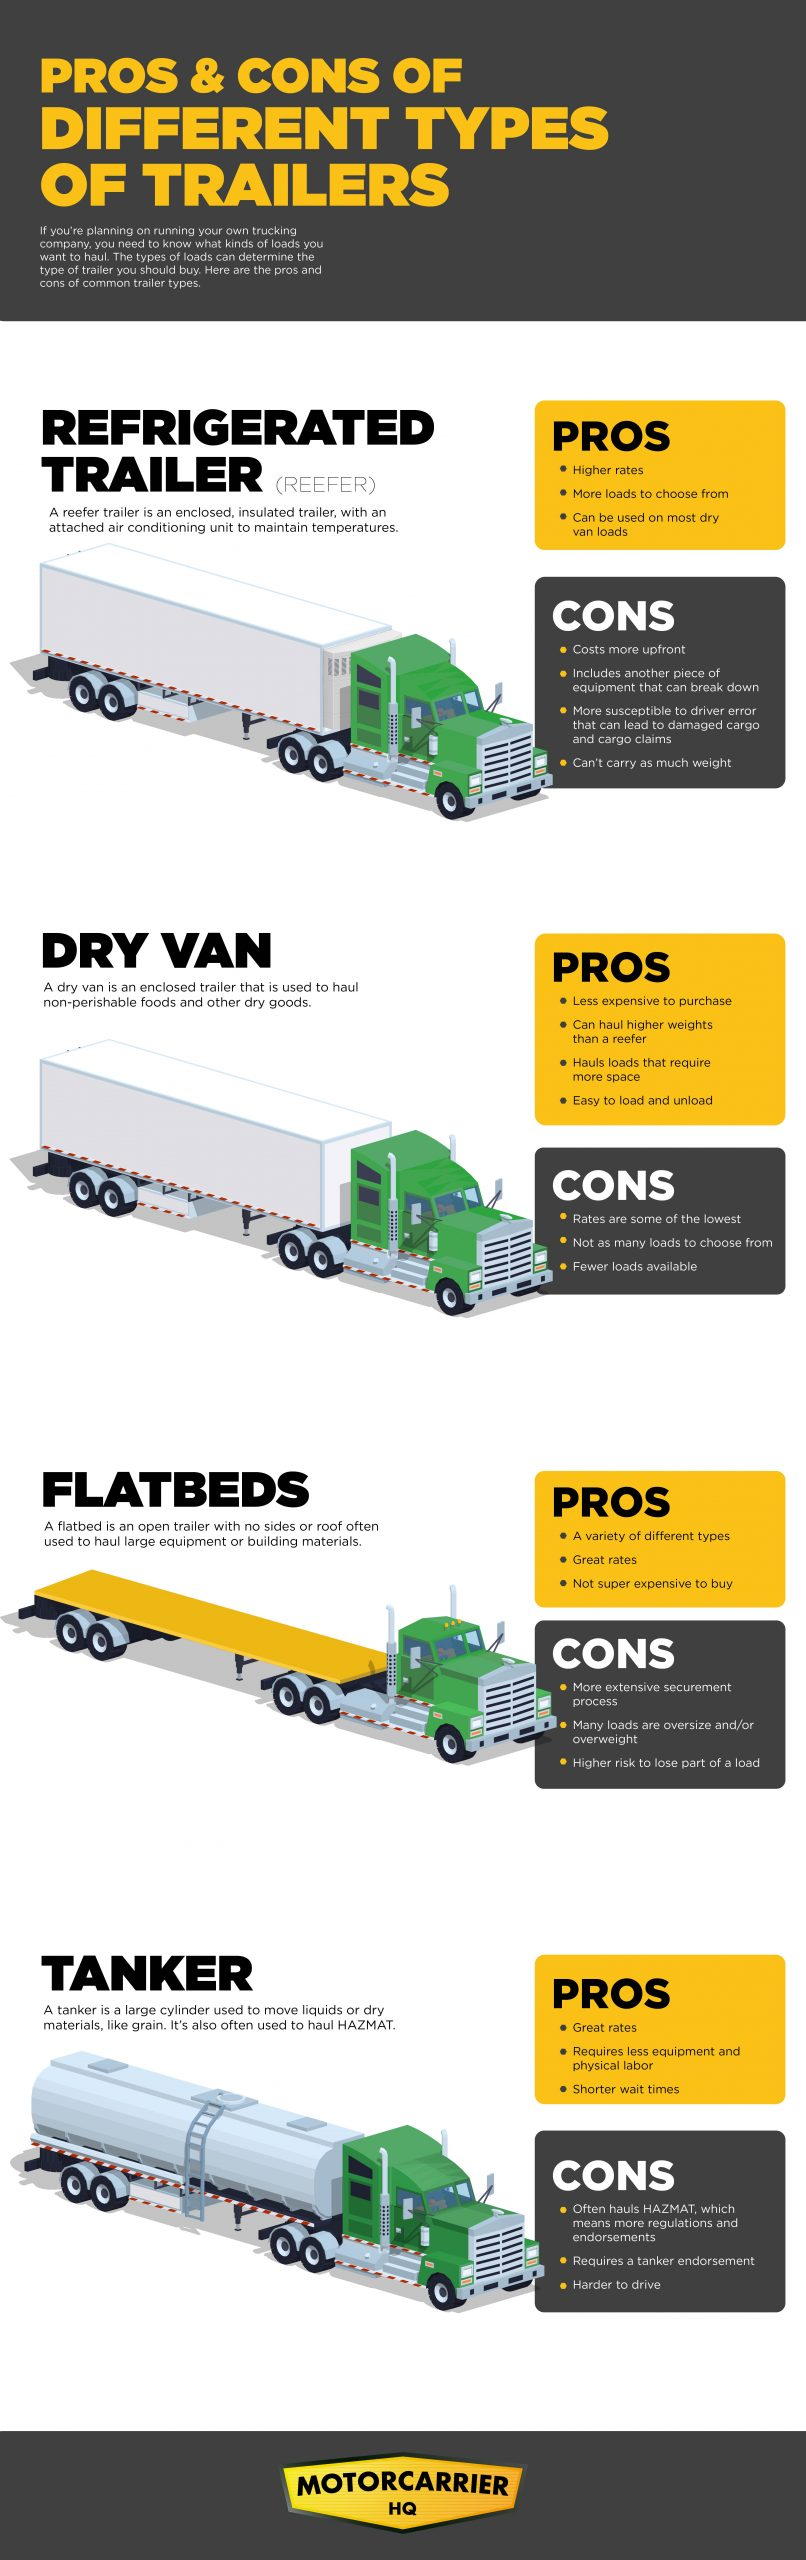 Infographic outlining pros and cons of different types of semi-truck trailers.